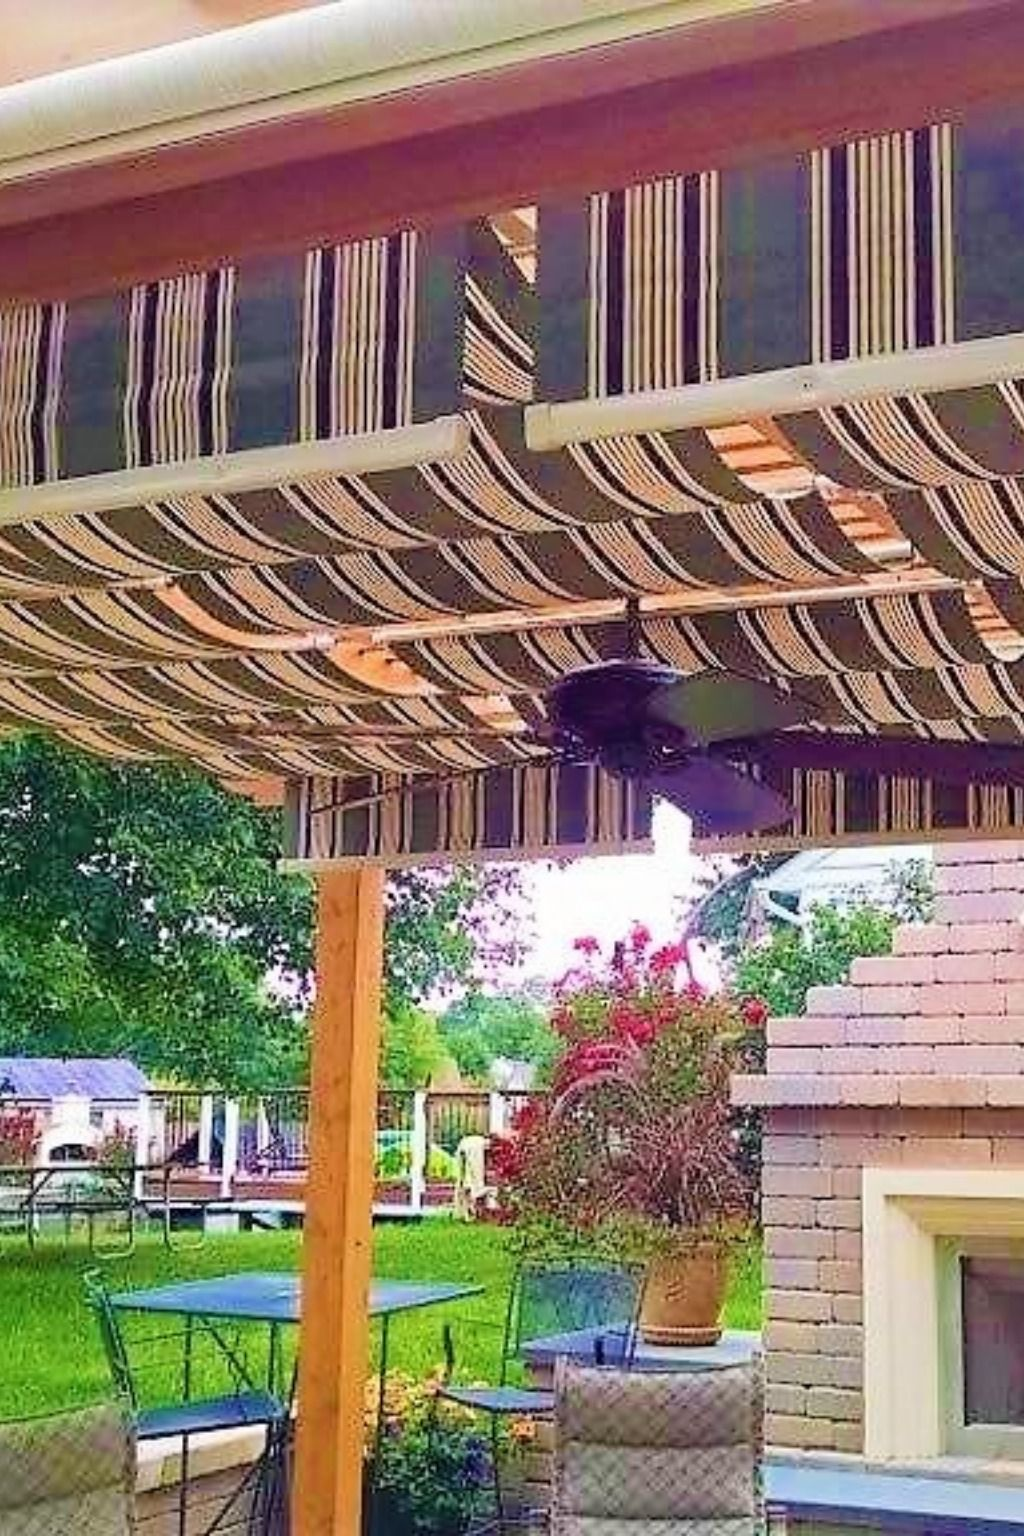 Green Striped Fabric Canopies To Shade Your Patio Setting Pergola Shade Cover Outdoor Fabric Canopy Pergola